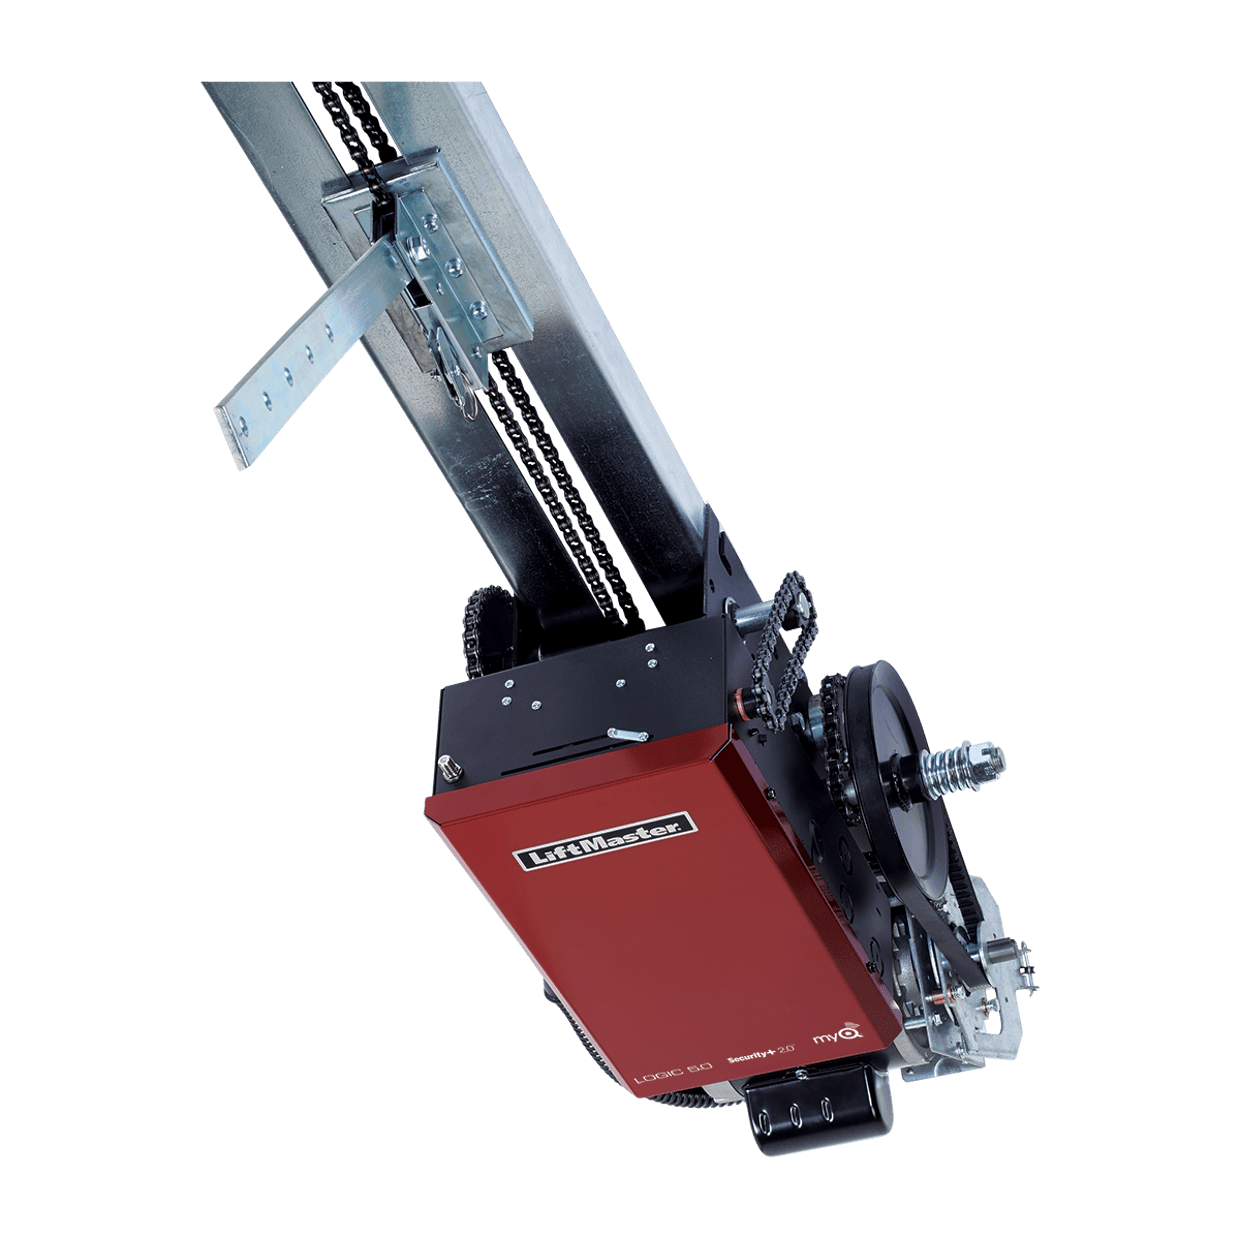 HCT Heavy-Duty High-Cycle Trolley Commercial Door Operator